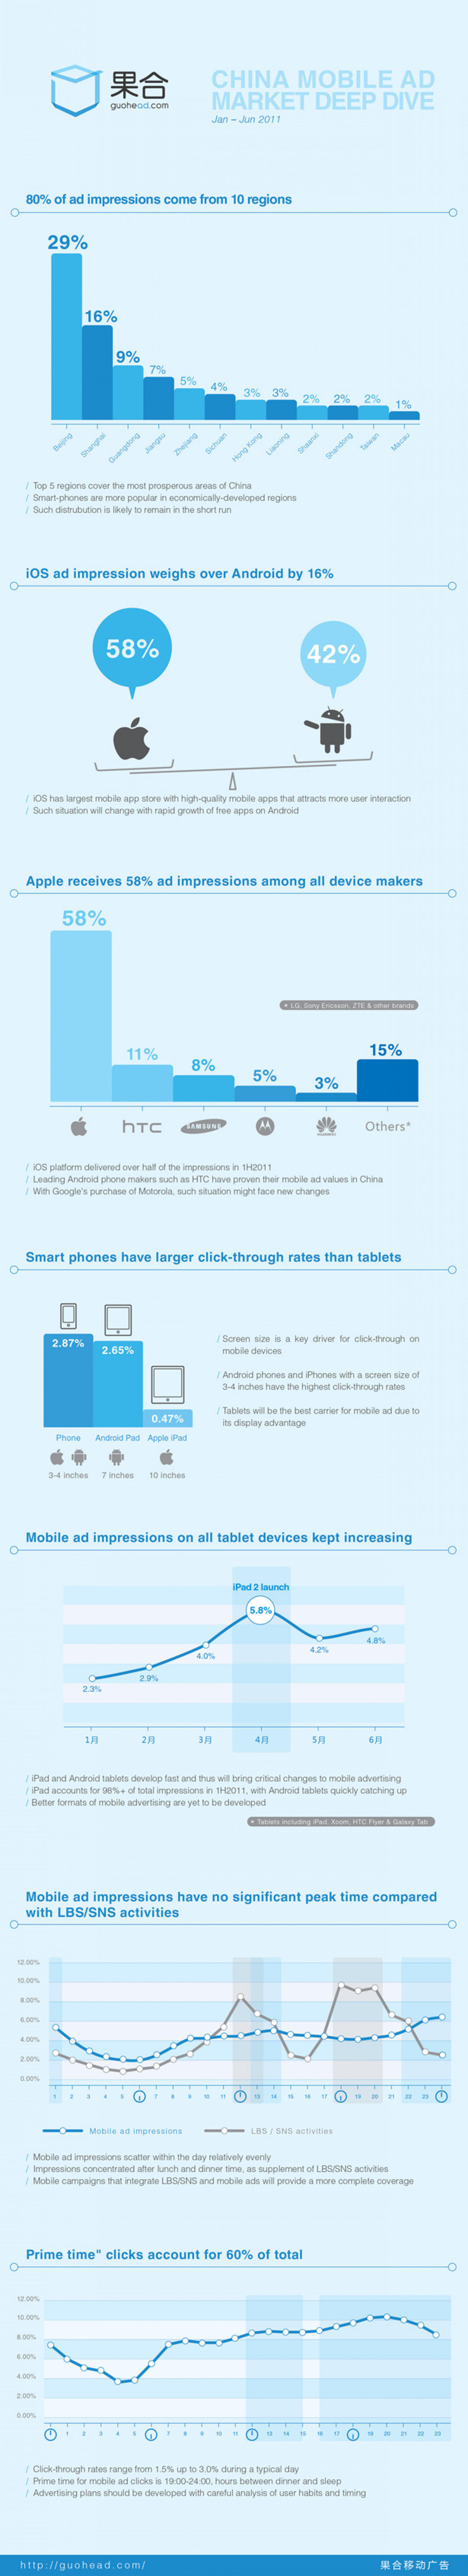 China Mobile Ad Market Deep Dive Infographic